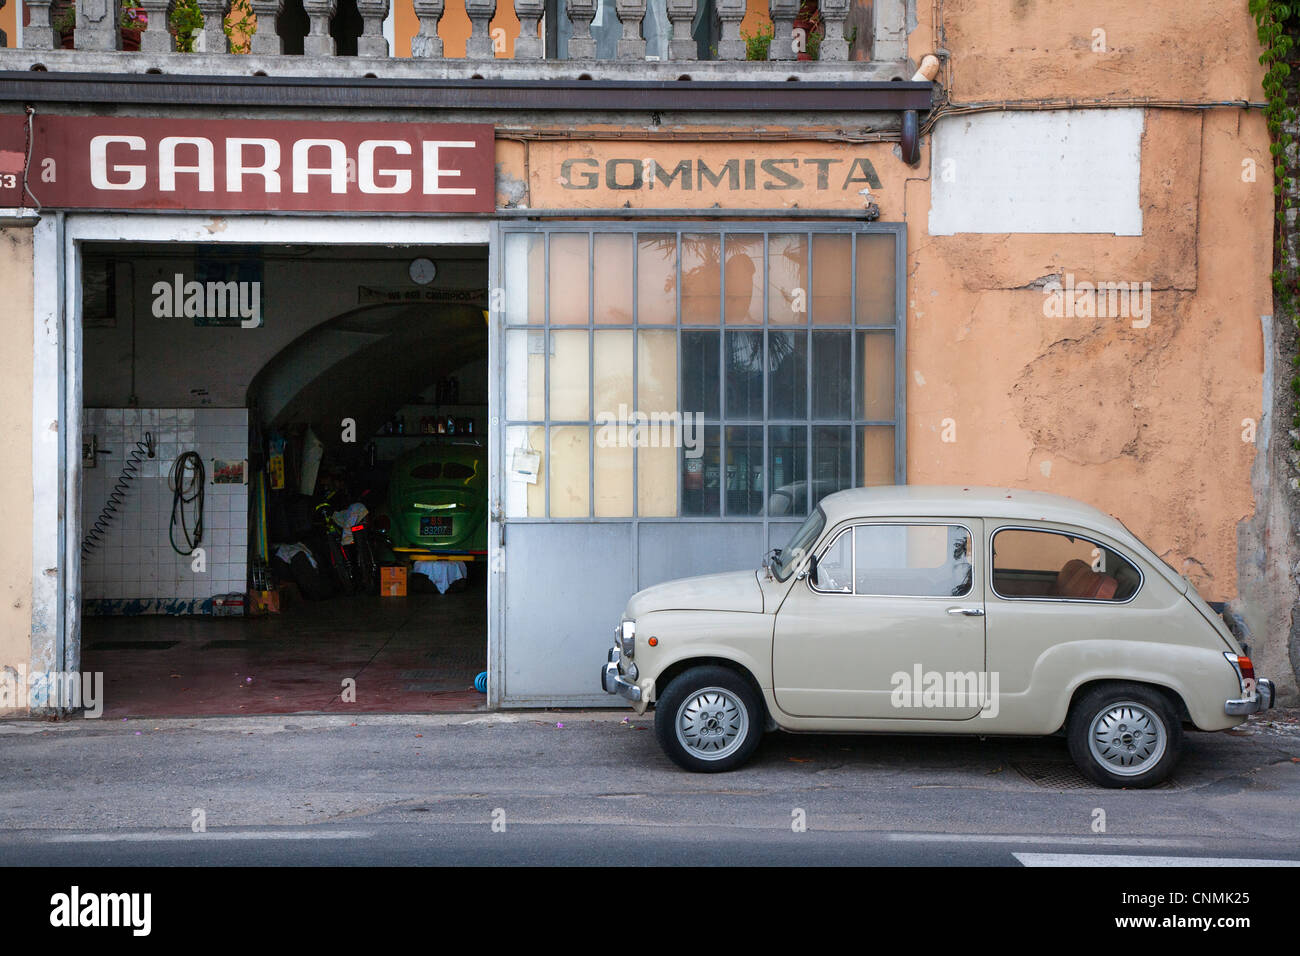 Old Italian Fiat parked outside a garage in Italy - Stock Image